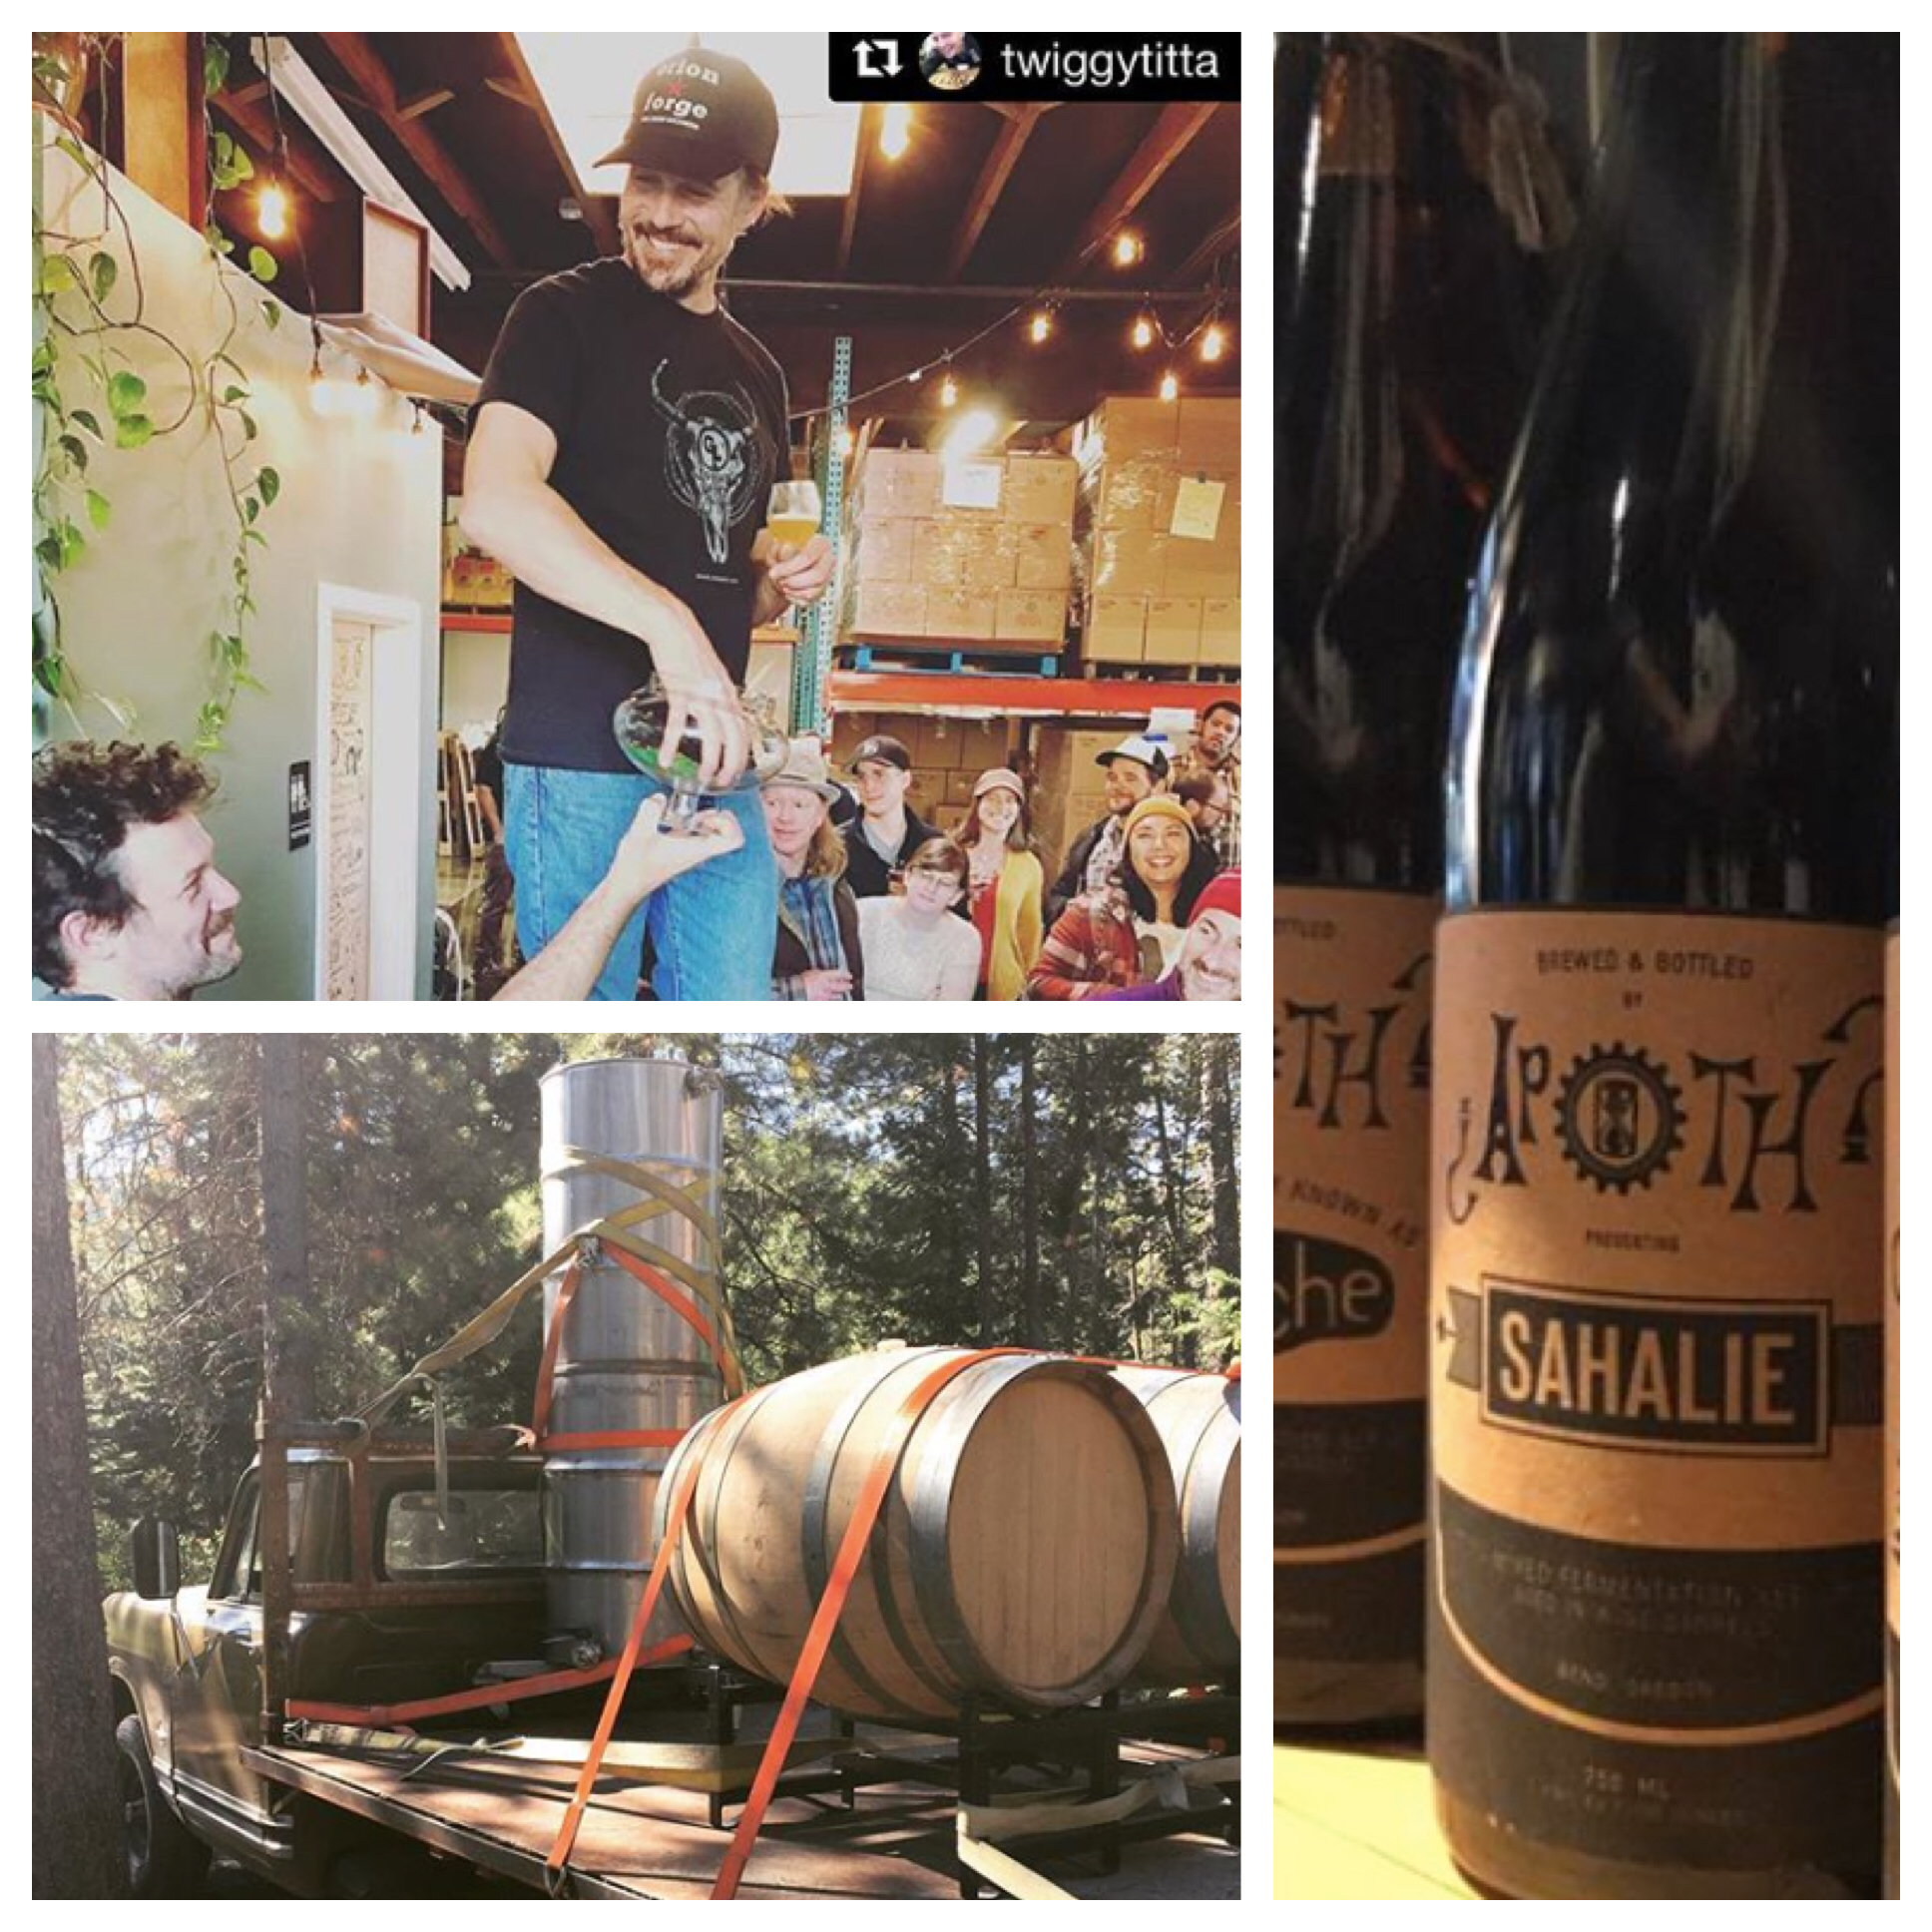 All photos:  The Ale Apothecary on Instagram (@thealeapothecary)